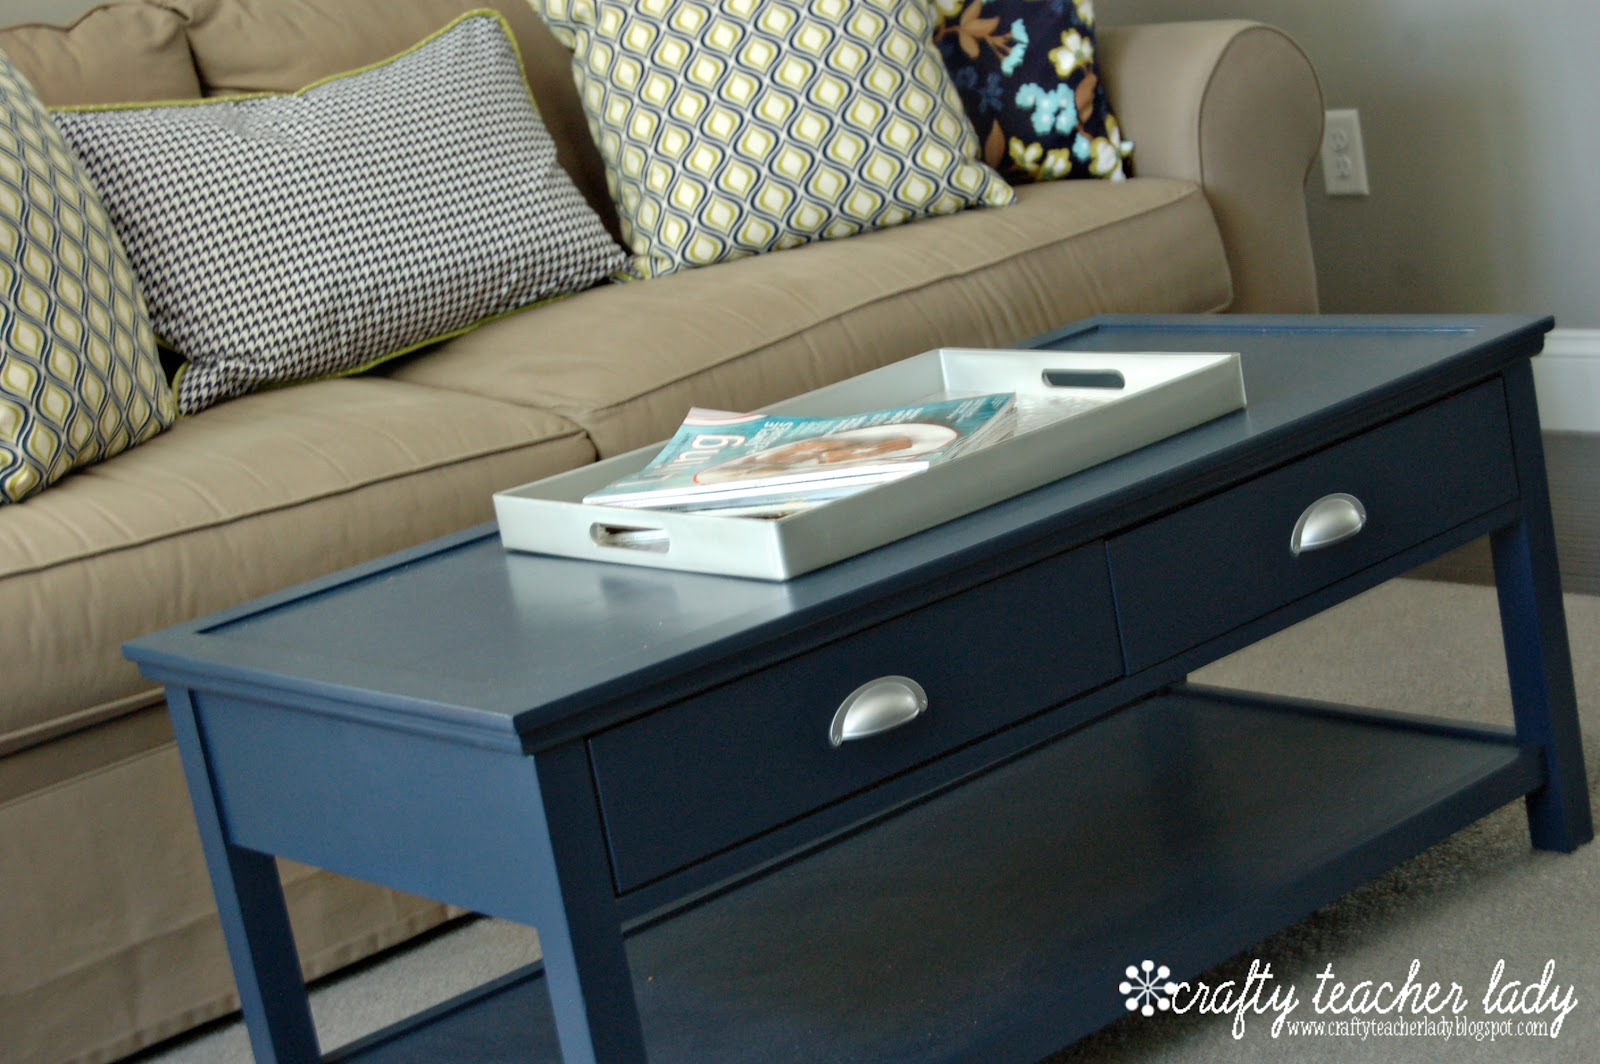 Crafty Teacher Lady: Coffee Table Makeover